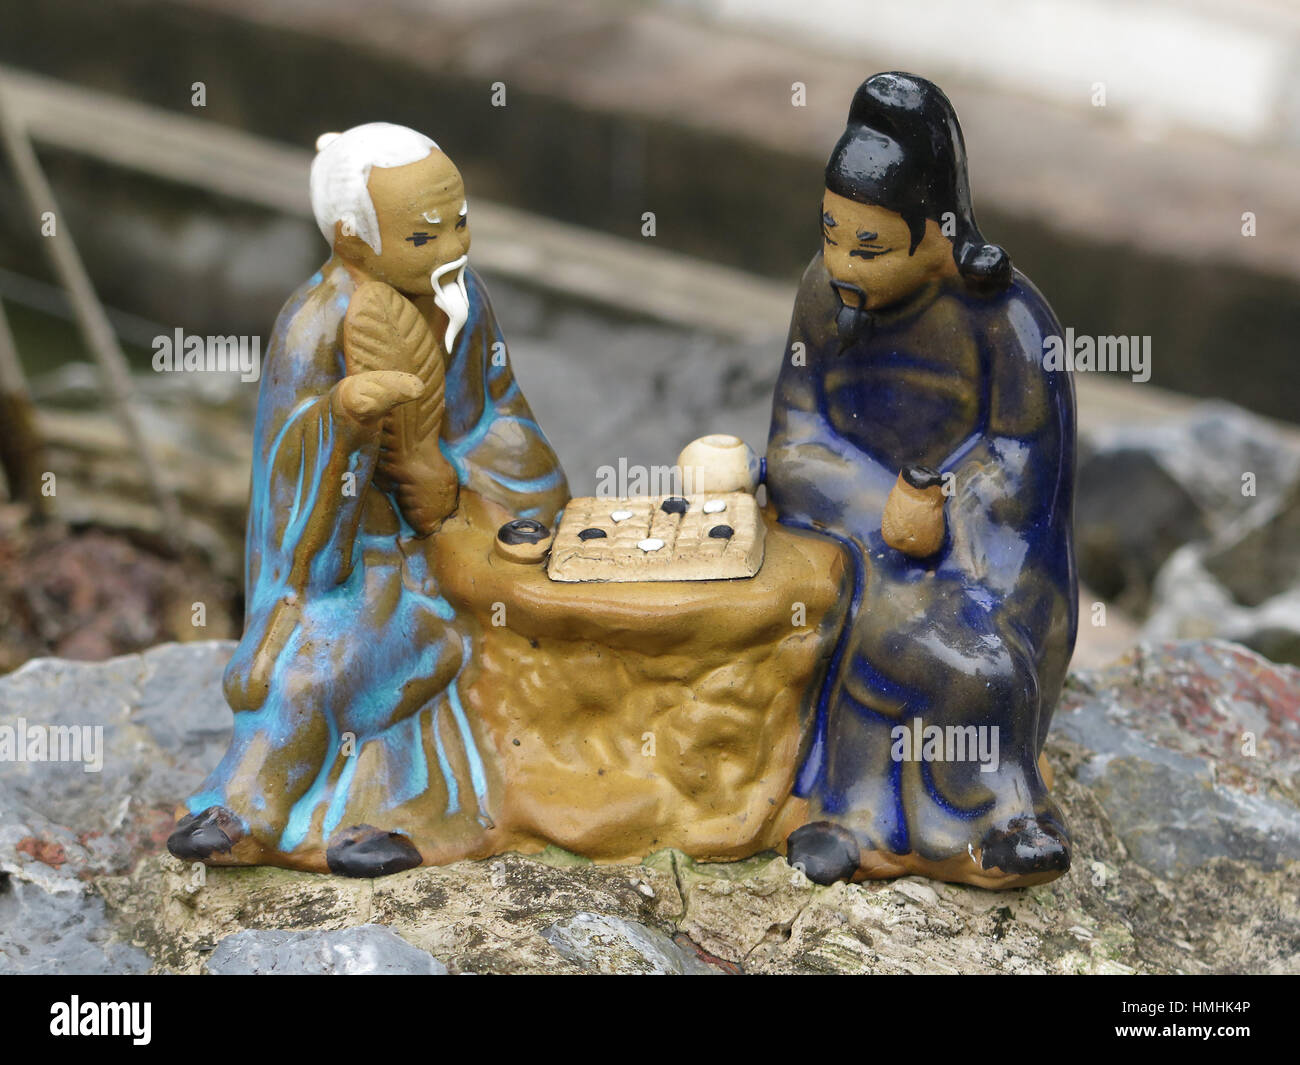 Ceramic ornament of two old Asian men playing chess Stock Photo